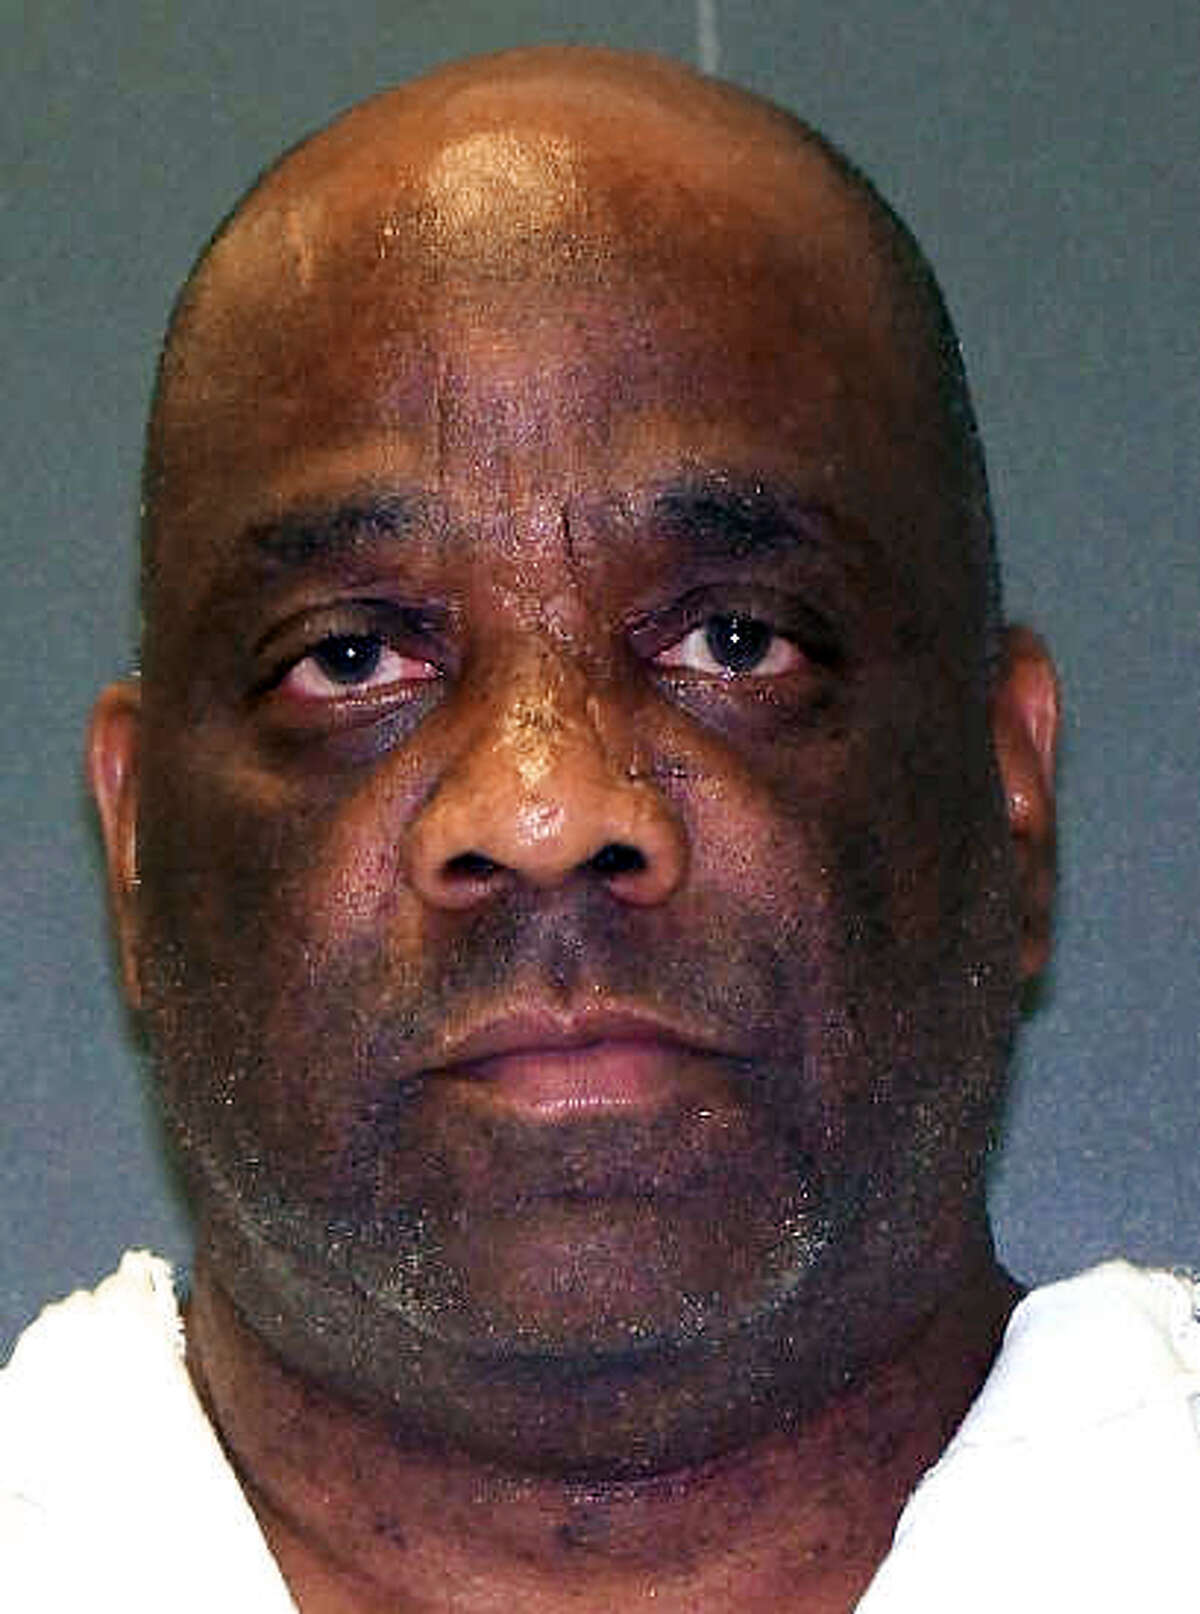 Robert Ladd Age entered death row: n/aExecution: Jan. 29, 2015 Summary: Ladd was convicted for the slaying of a 38-year-old Vickie Ann Garner, when a federal appeals court halted his punishment. Lawyers then said they found juvenile records suggesting he was mentally impaired, a finding that could make him ineligible for the death penalty.